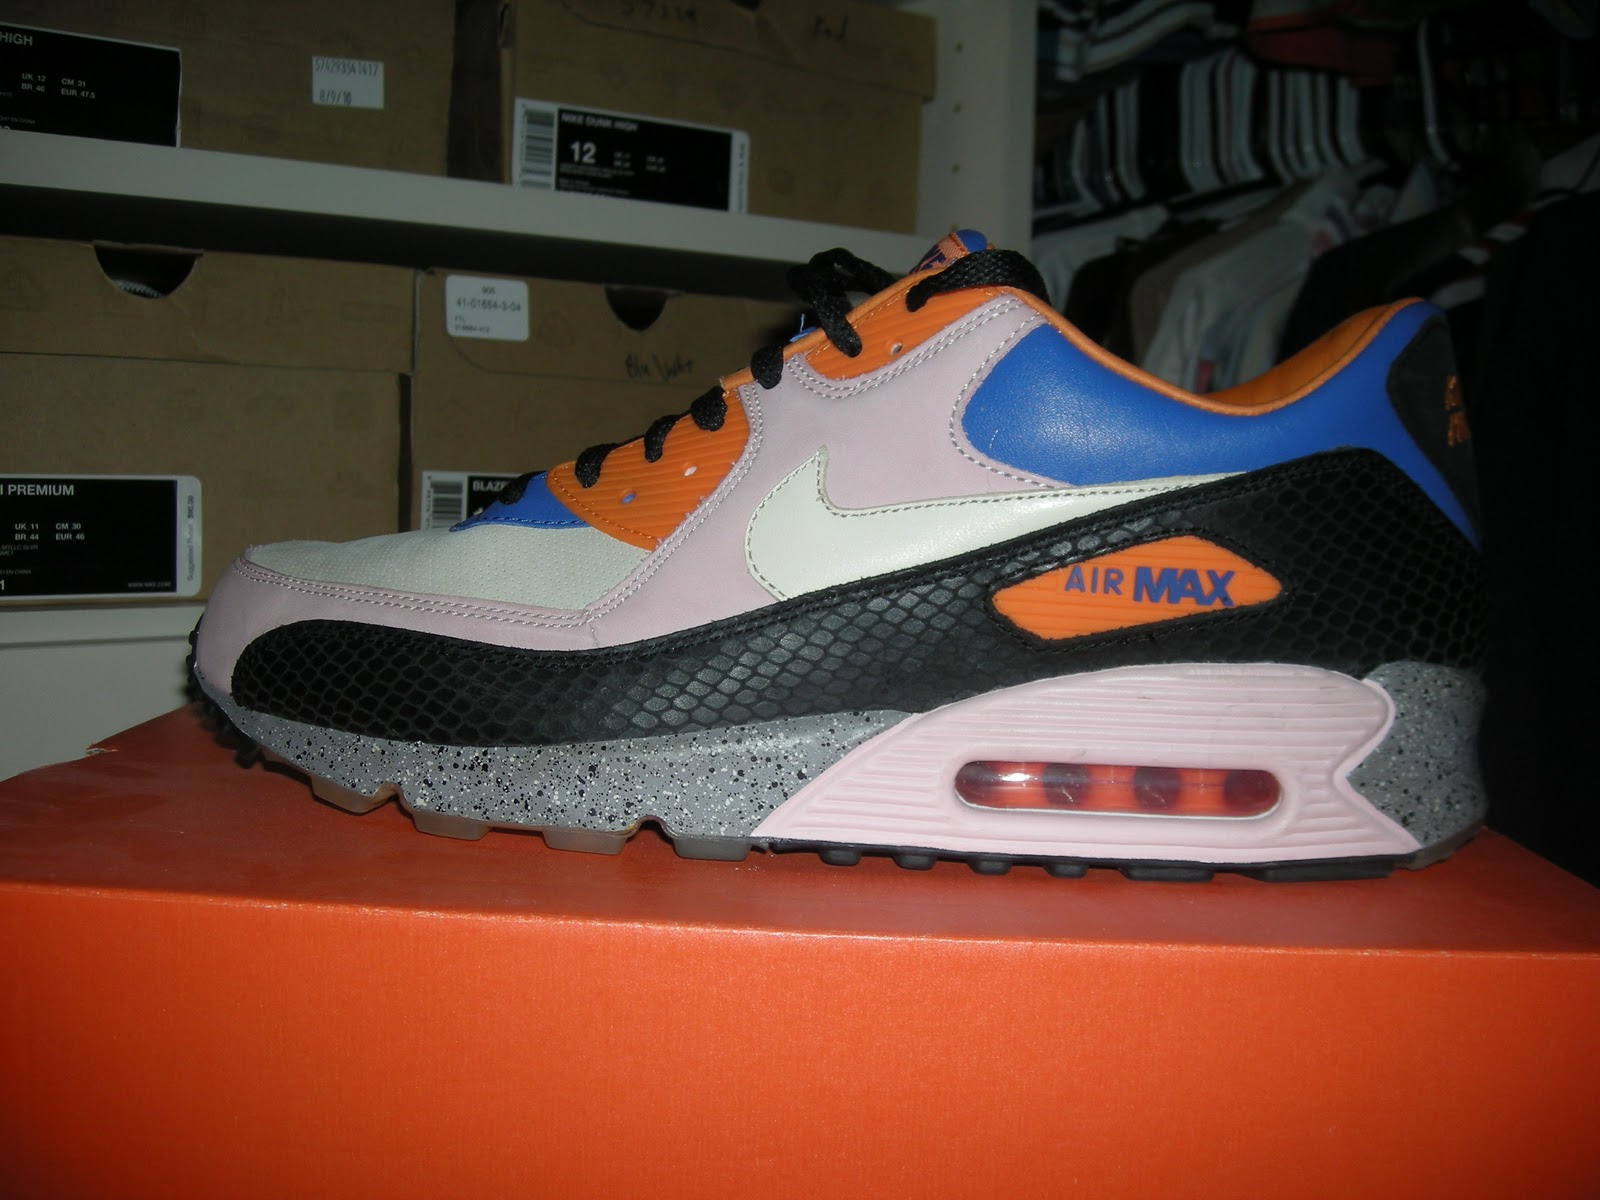 Nike Air Max 90 Mowabb King of the Mountain Champagne Cream Spor